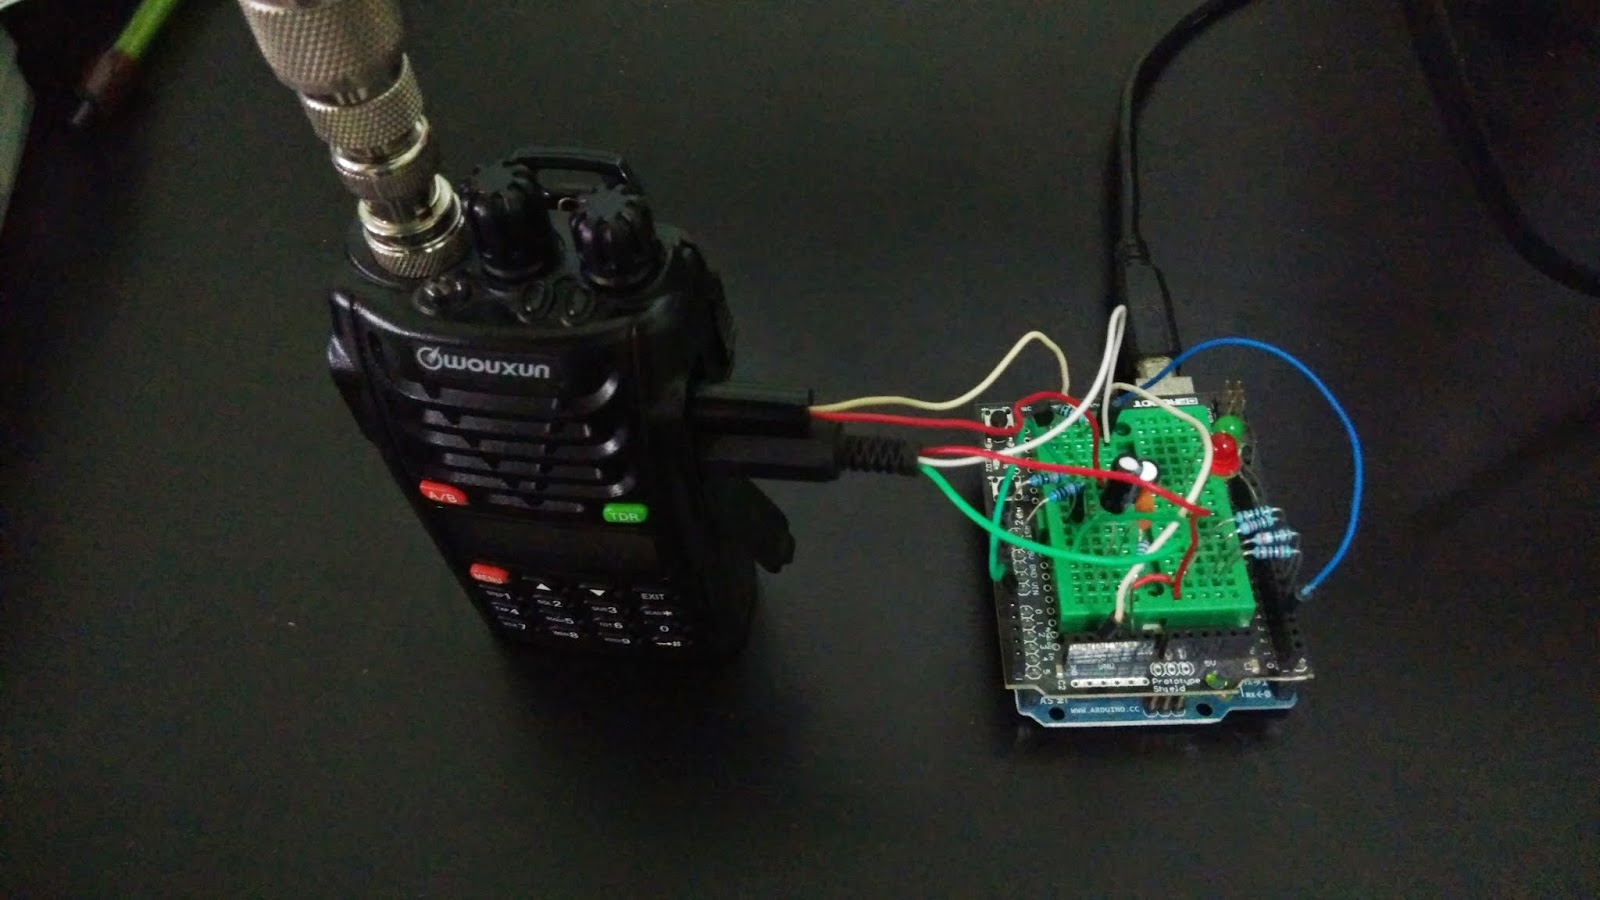 9W2SVT: Building an Open Source Arduino APRS Tracker with